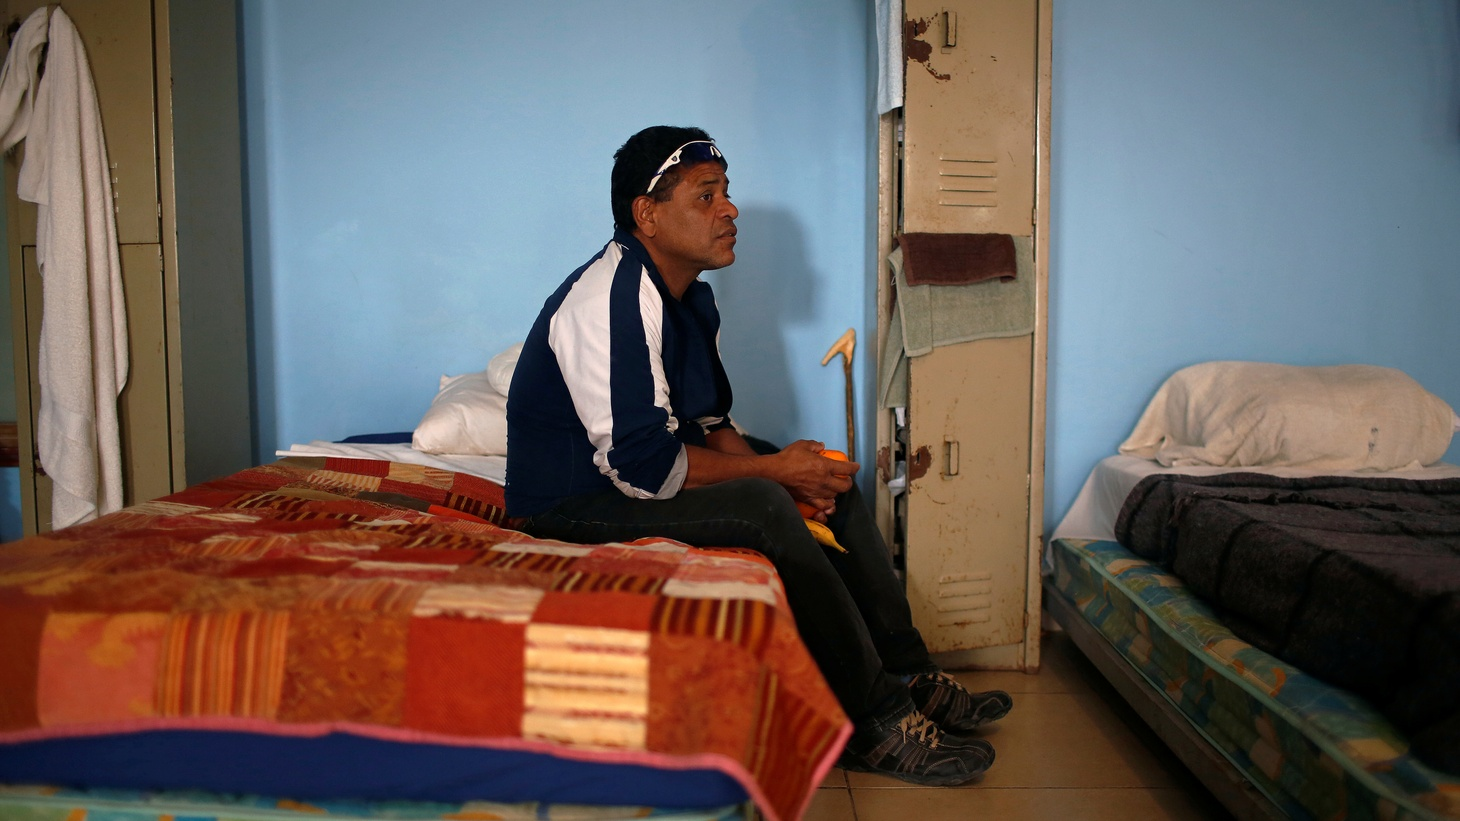 A Honduran migrant deported from the United States rests at Senda de Vida migrant shelter in Reynosa, Mexico January 10, 2019.